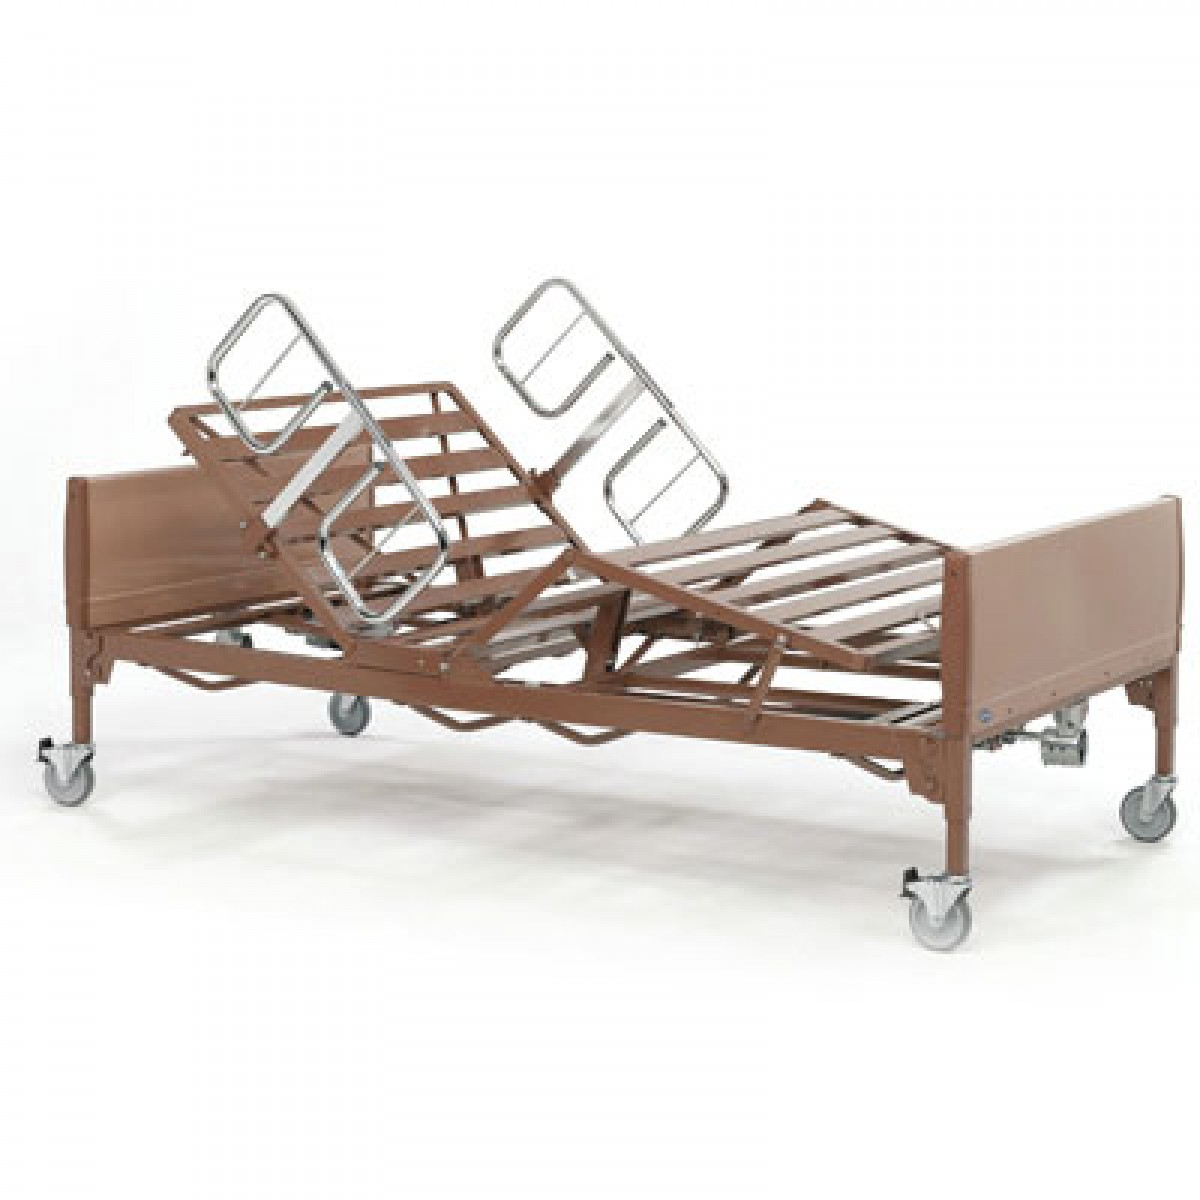 invacare bariatric hospital bed full electric heavy duty